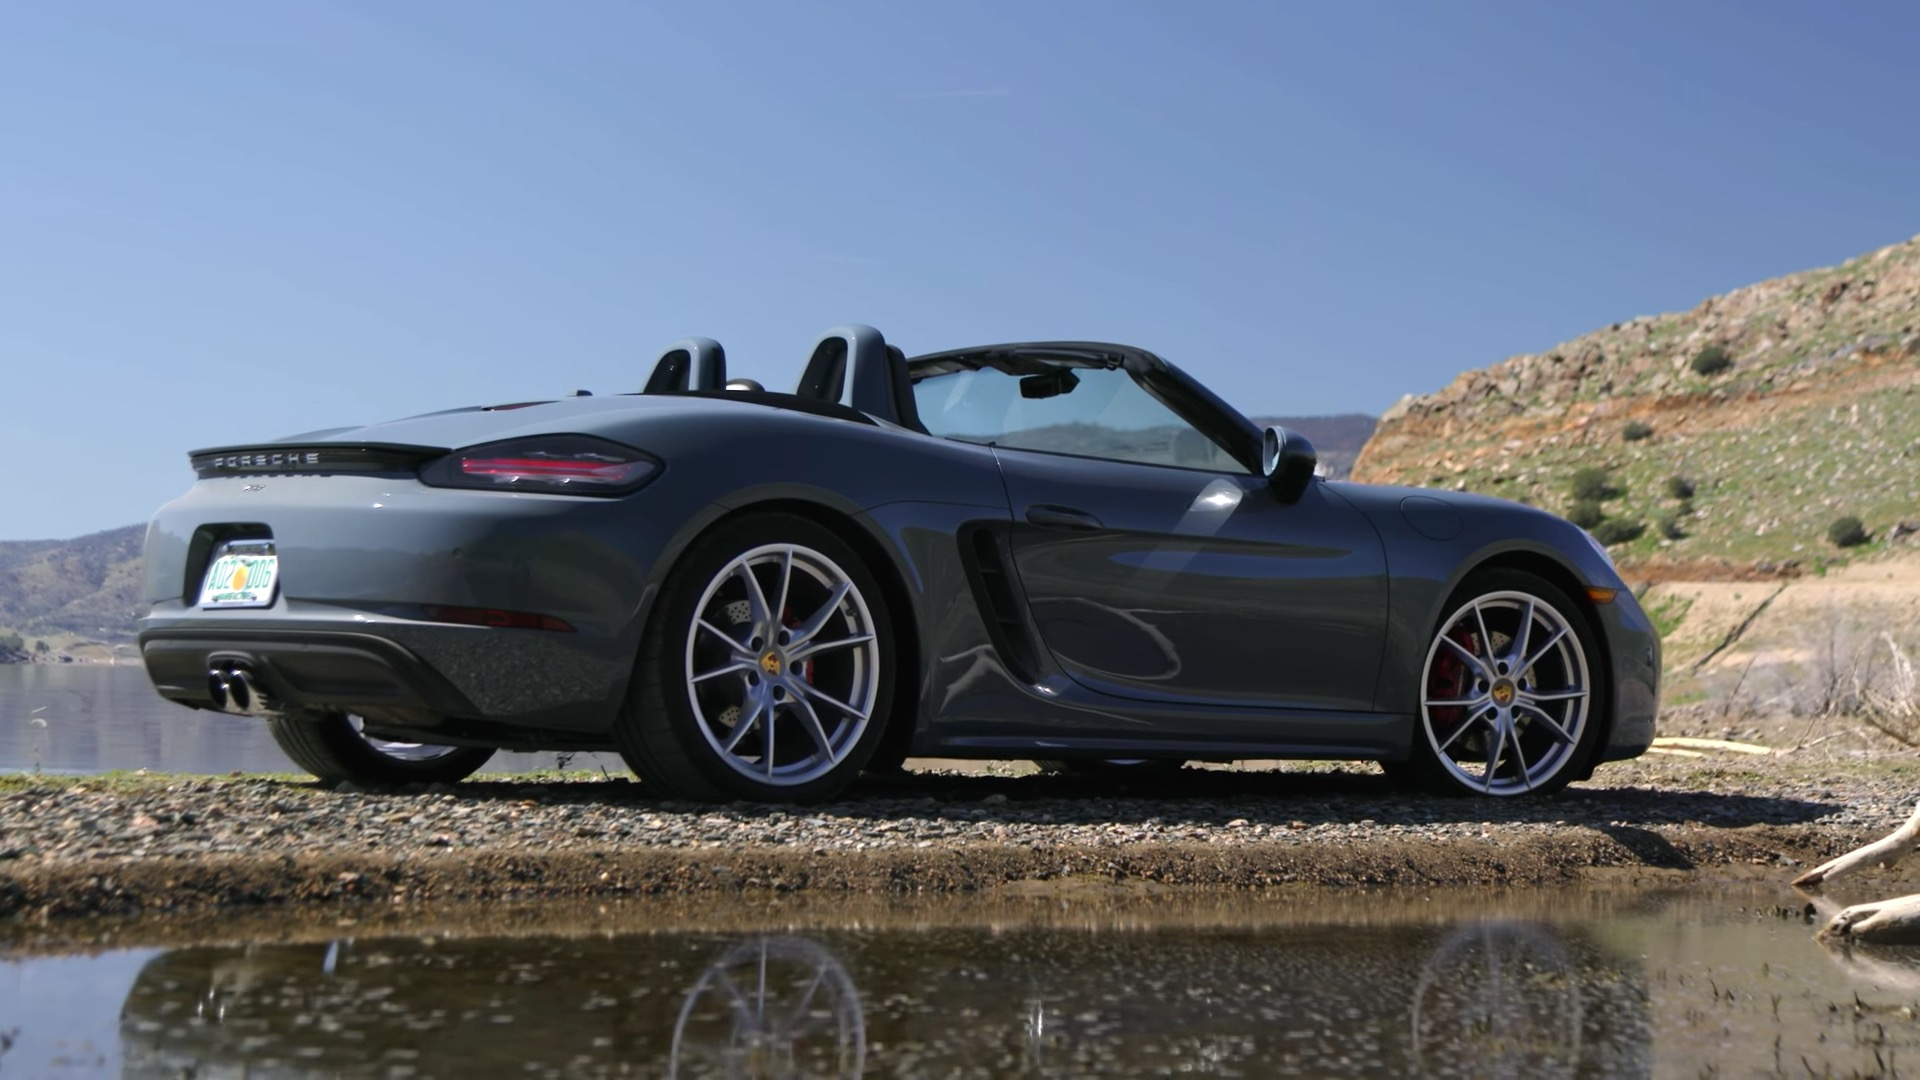 6 Photos 2017 Porsche 718 Boxster S